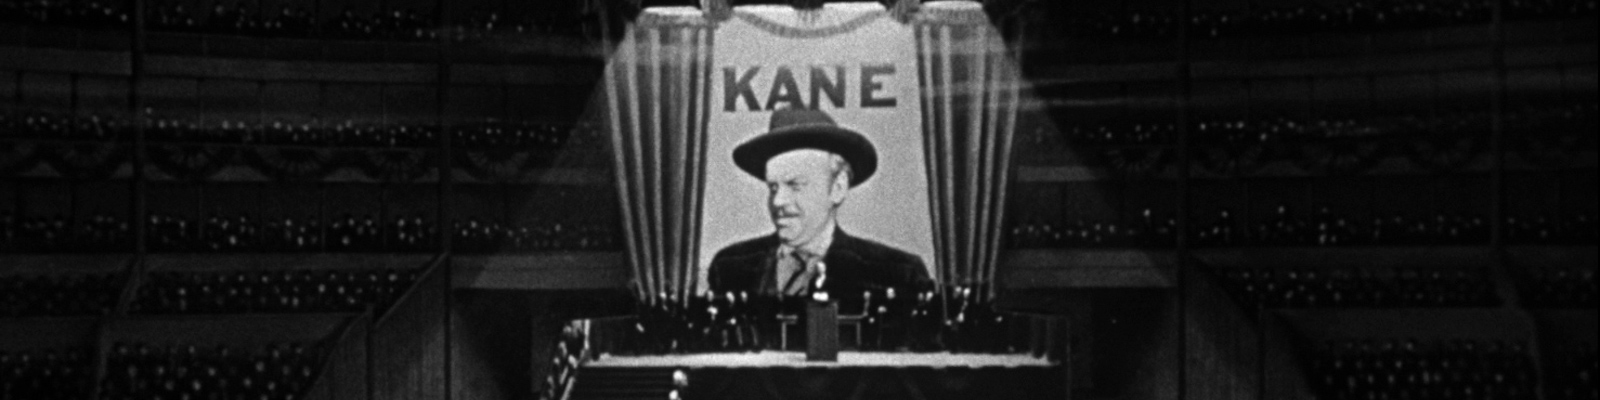 Orson Welles as Charles Foster Kane stands on stage in front of a large poster bearing his image and the word KANE